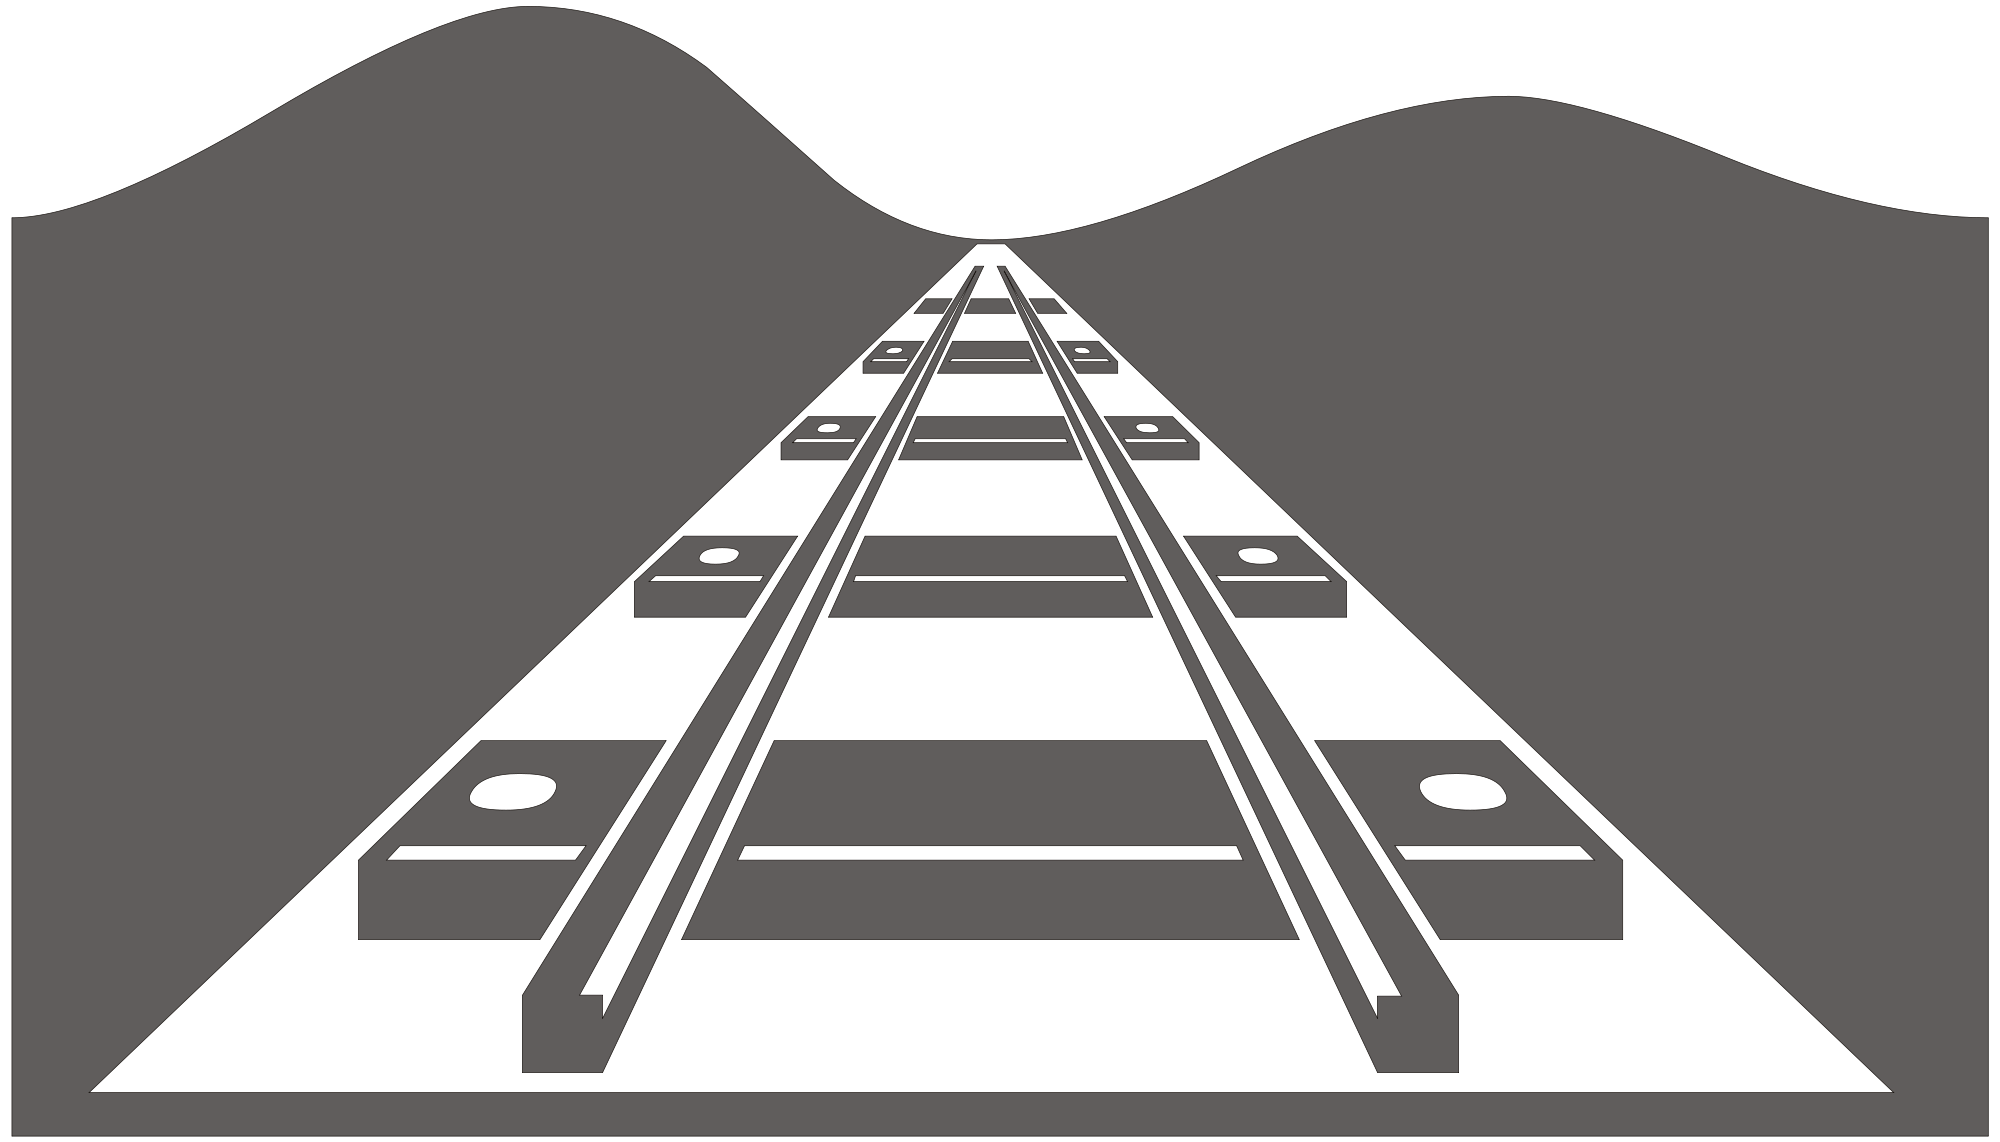 Road svg silhouette. File railway wikimedia commons vector black and white download